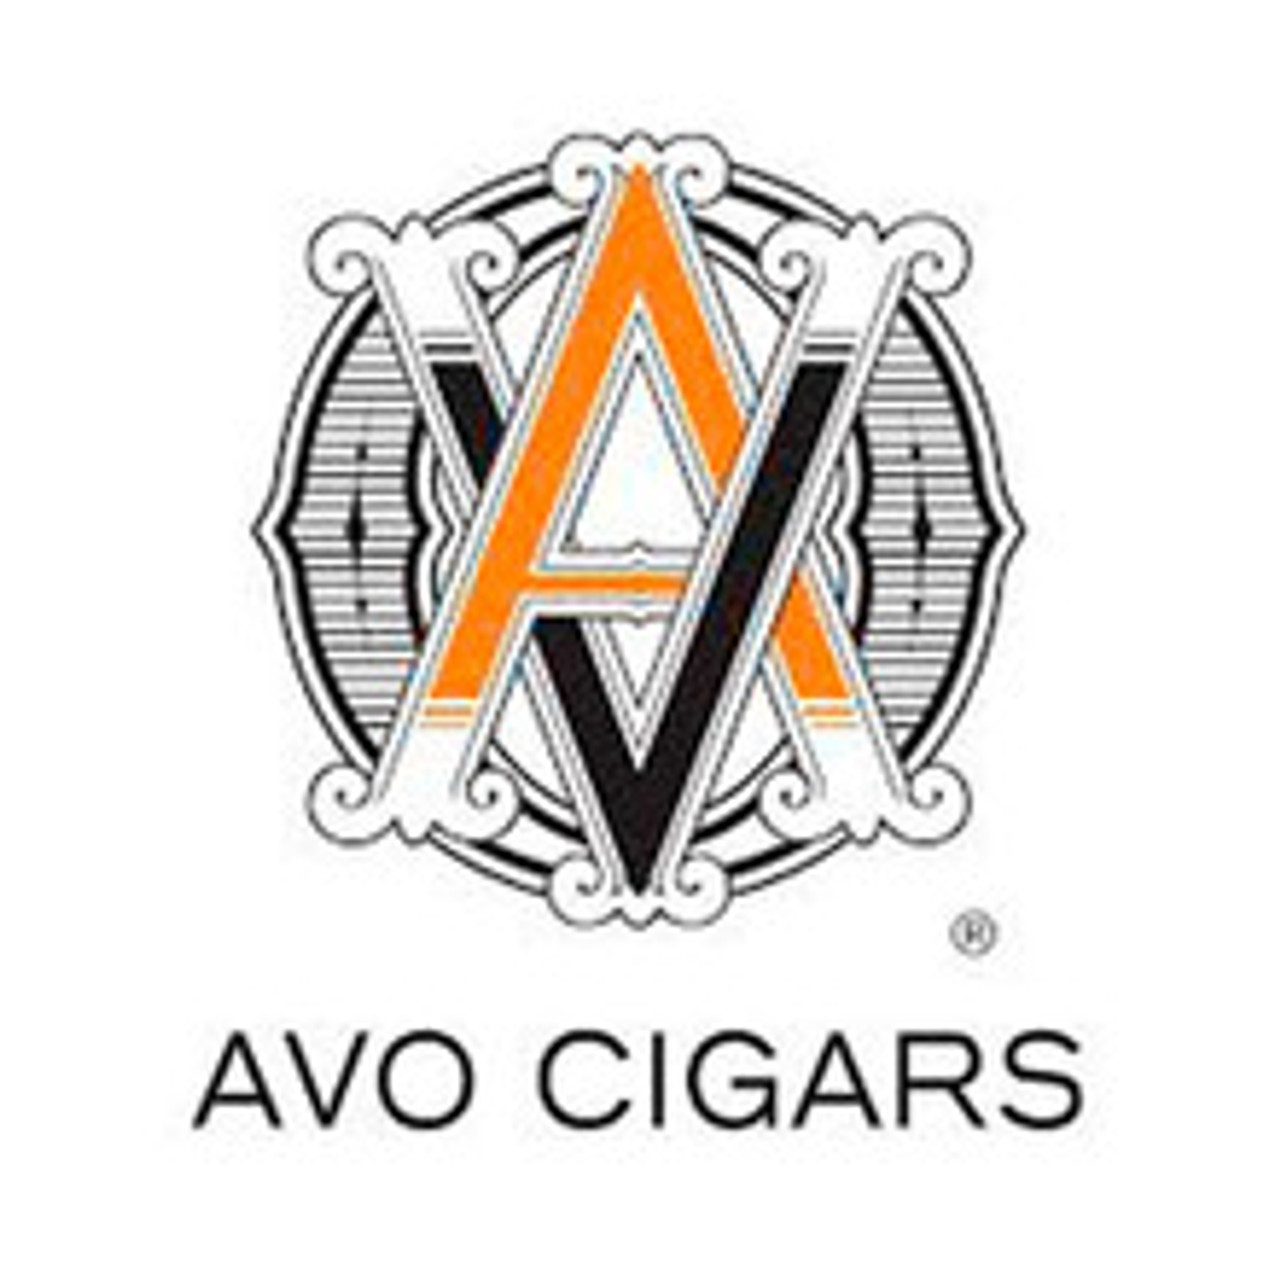 AVO Classic No. 2 Tubos Cigars - 6 X 50 (Box of 20)